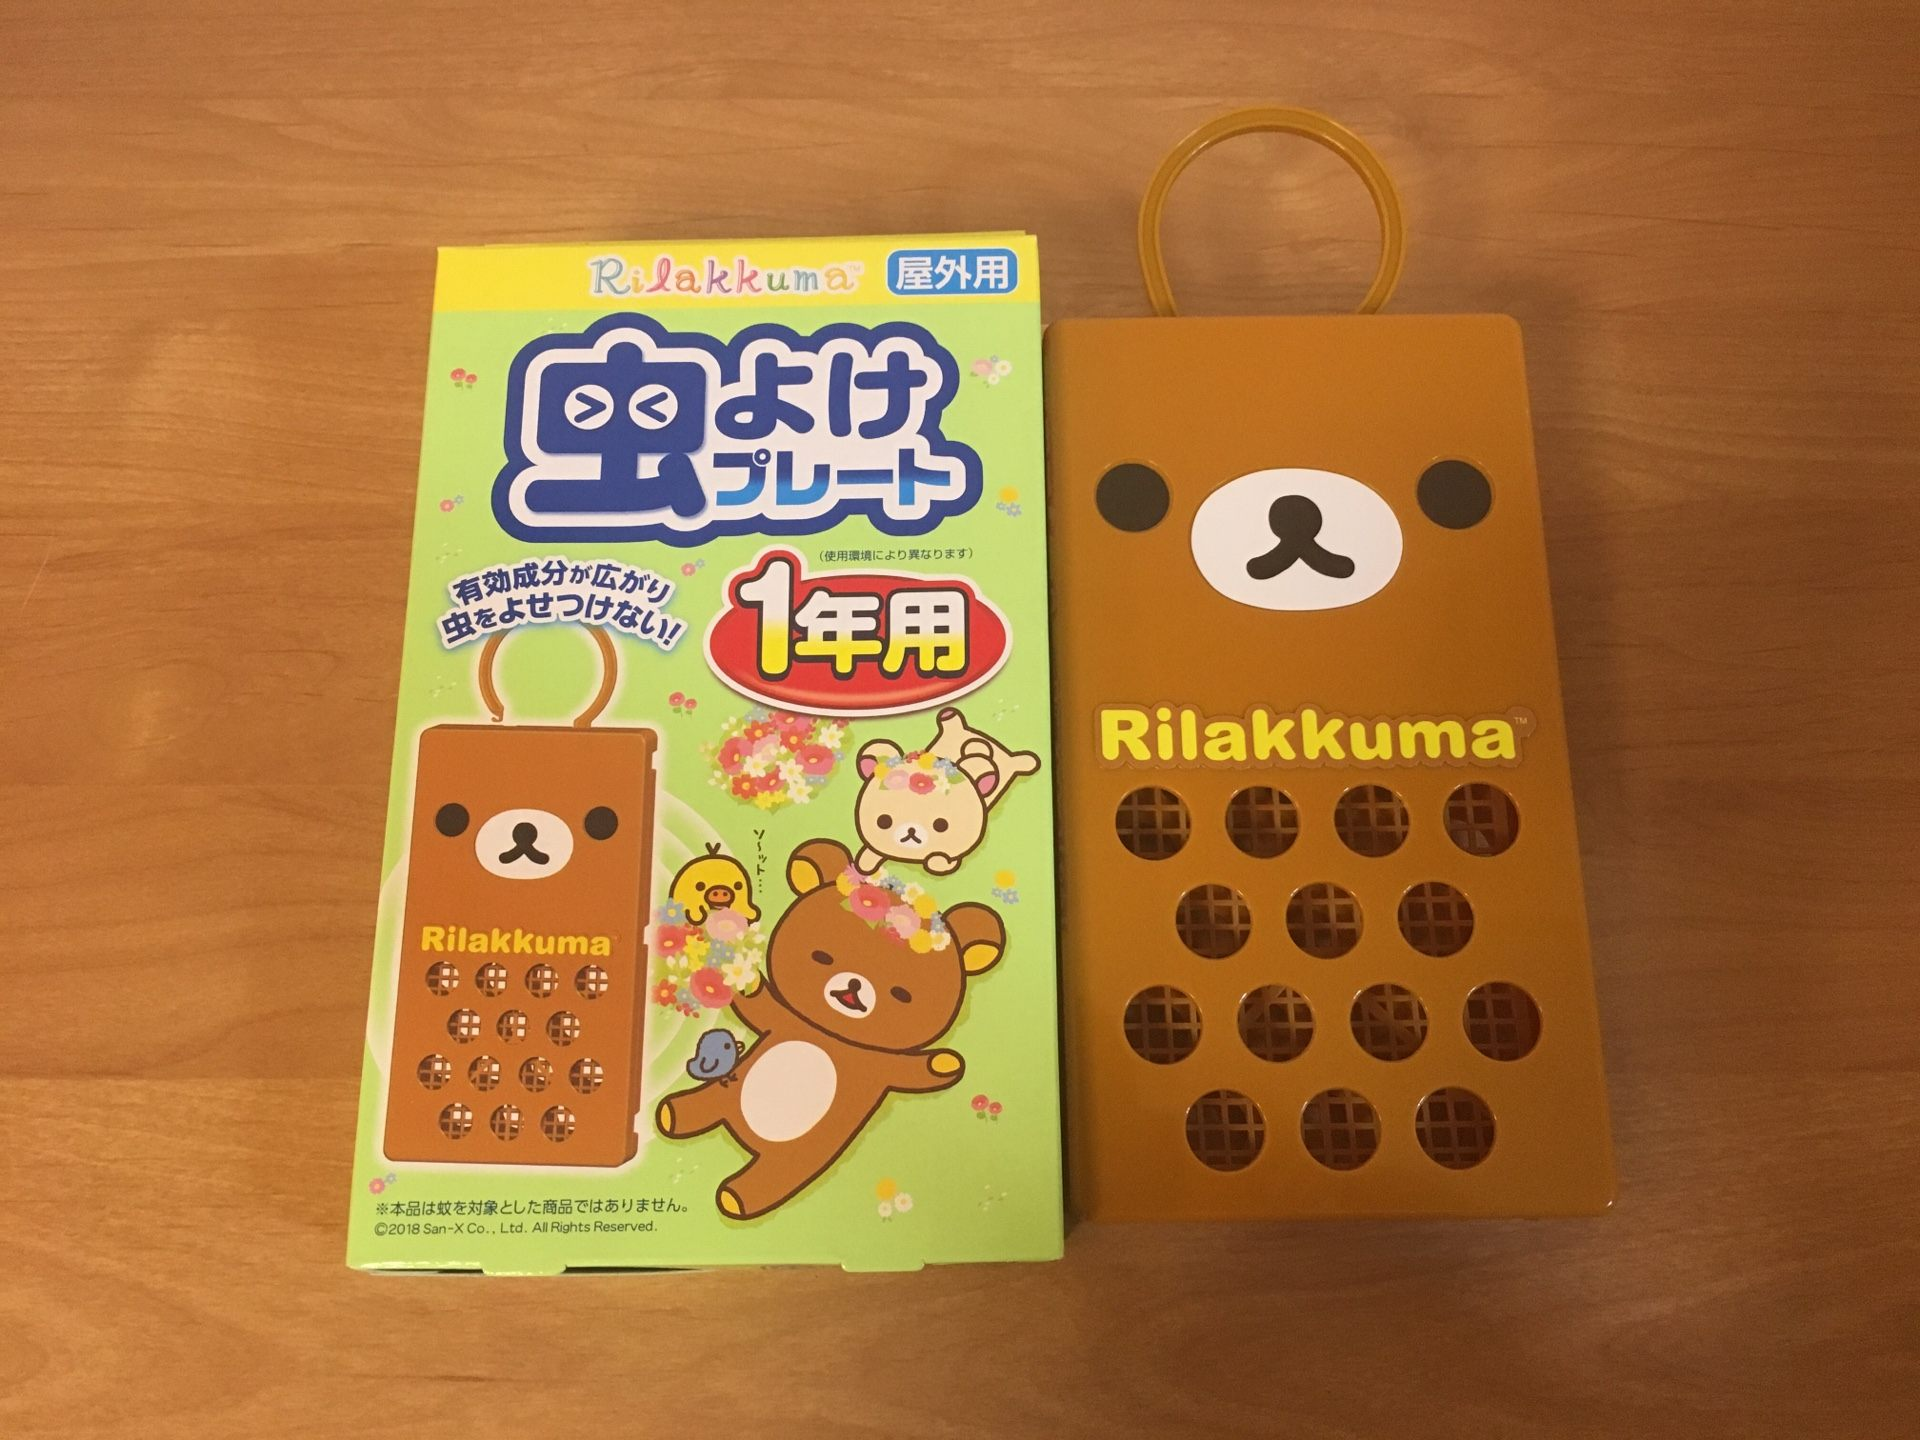 The same goes for the Rilakkuma version; you have to put the eye and mouth stickers on yourself.